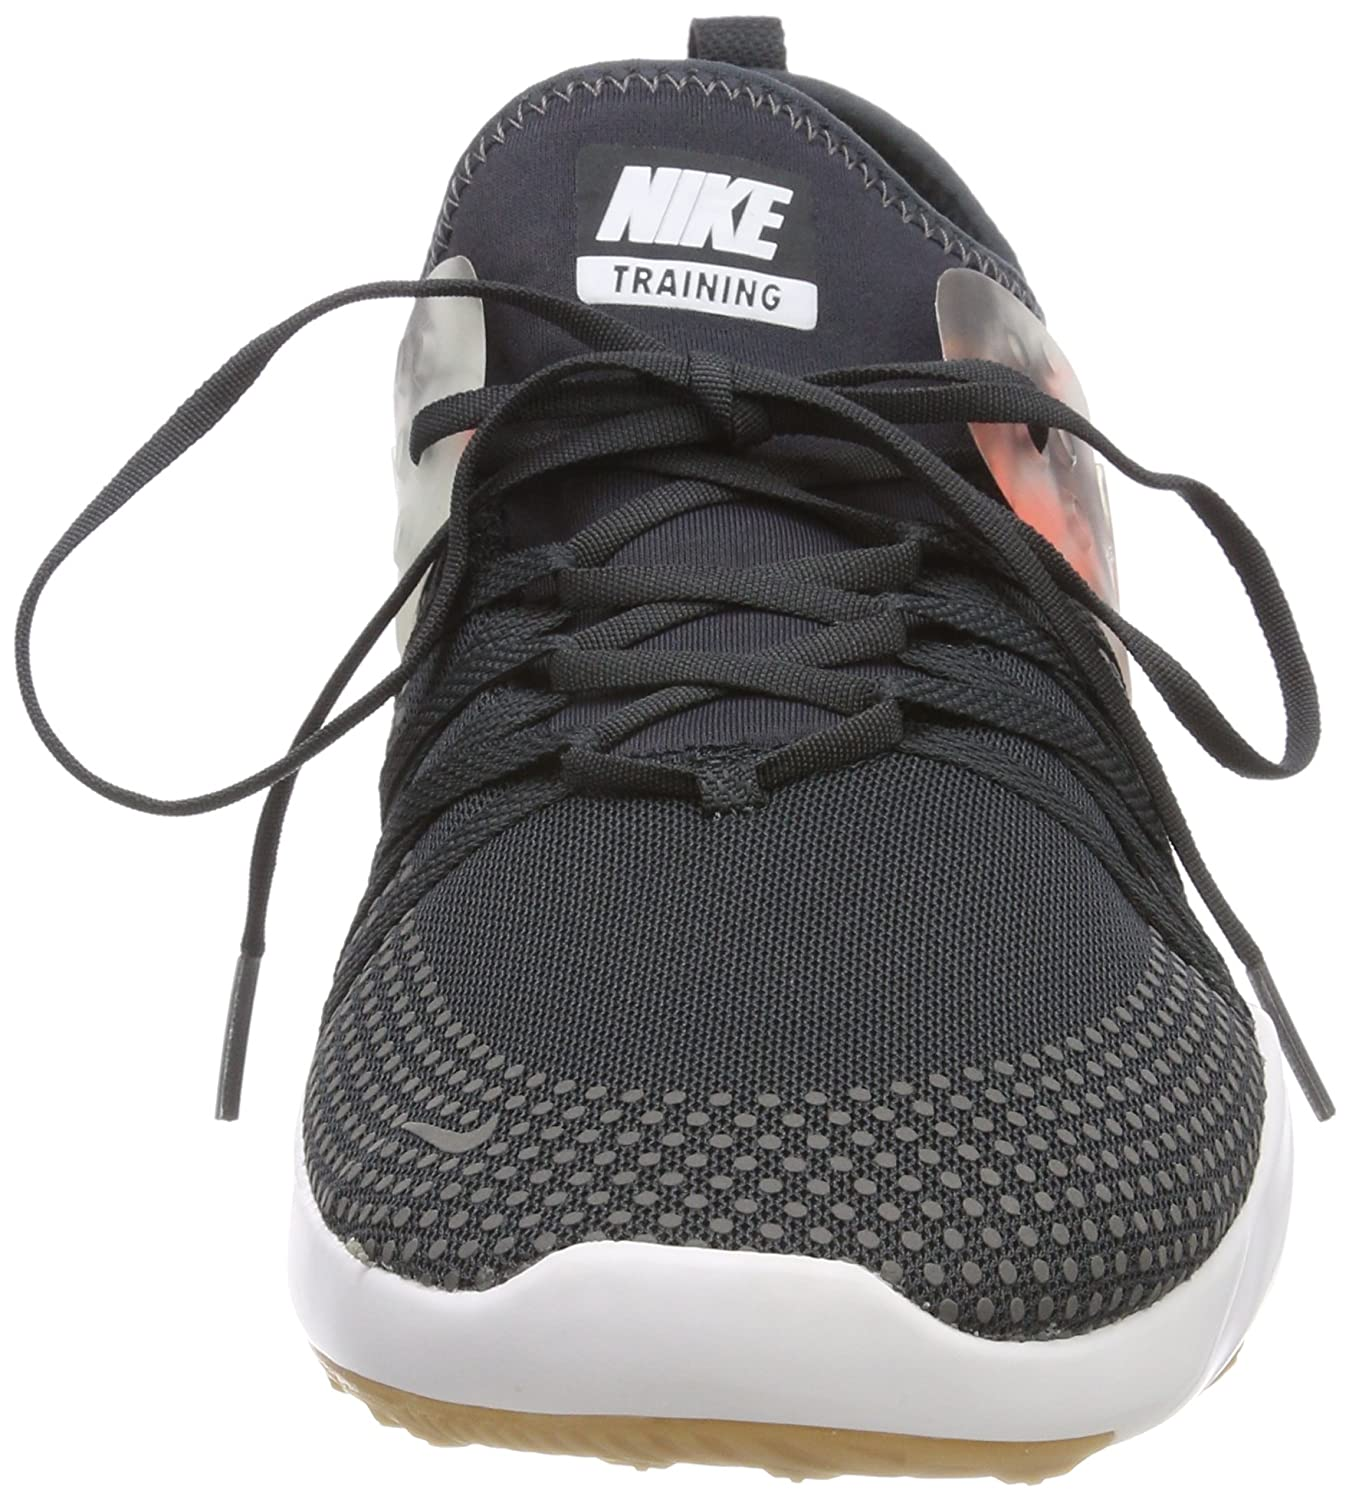 560c17eac81ac Amazon.com   NIKE Womens Free TR 7 Anthracite/Anthracite-White-Lava Glow  Size 10.5 Style Number : 904651 006   Fitness & Cross-Training